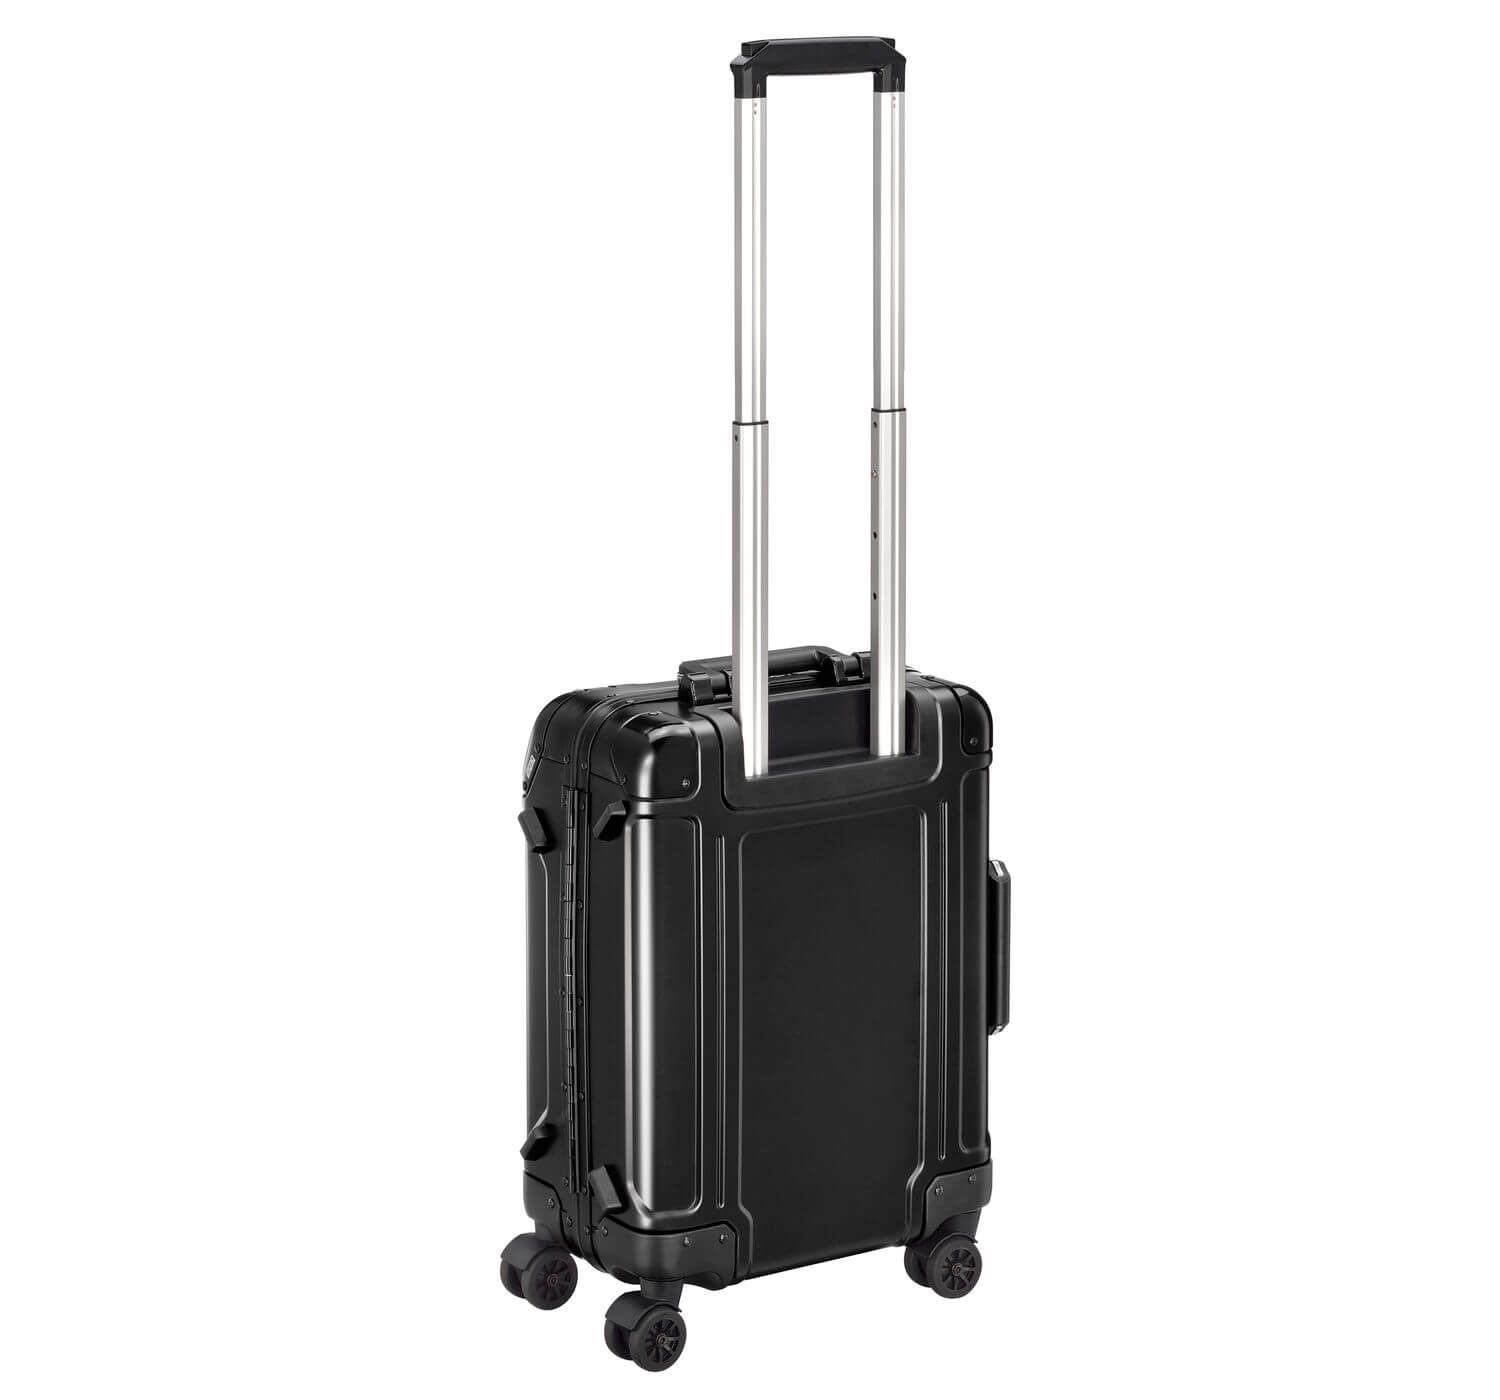 Geo Aluminum 2.0 - Carry-on 4-Wheel Spinner Luggage - фото 2